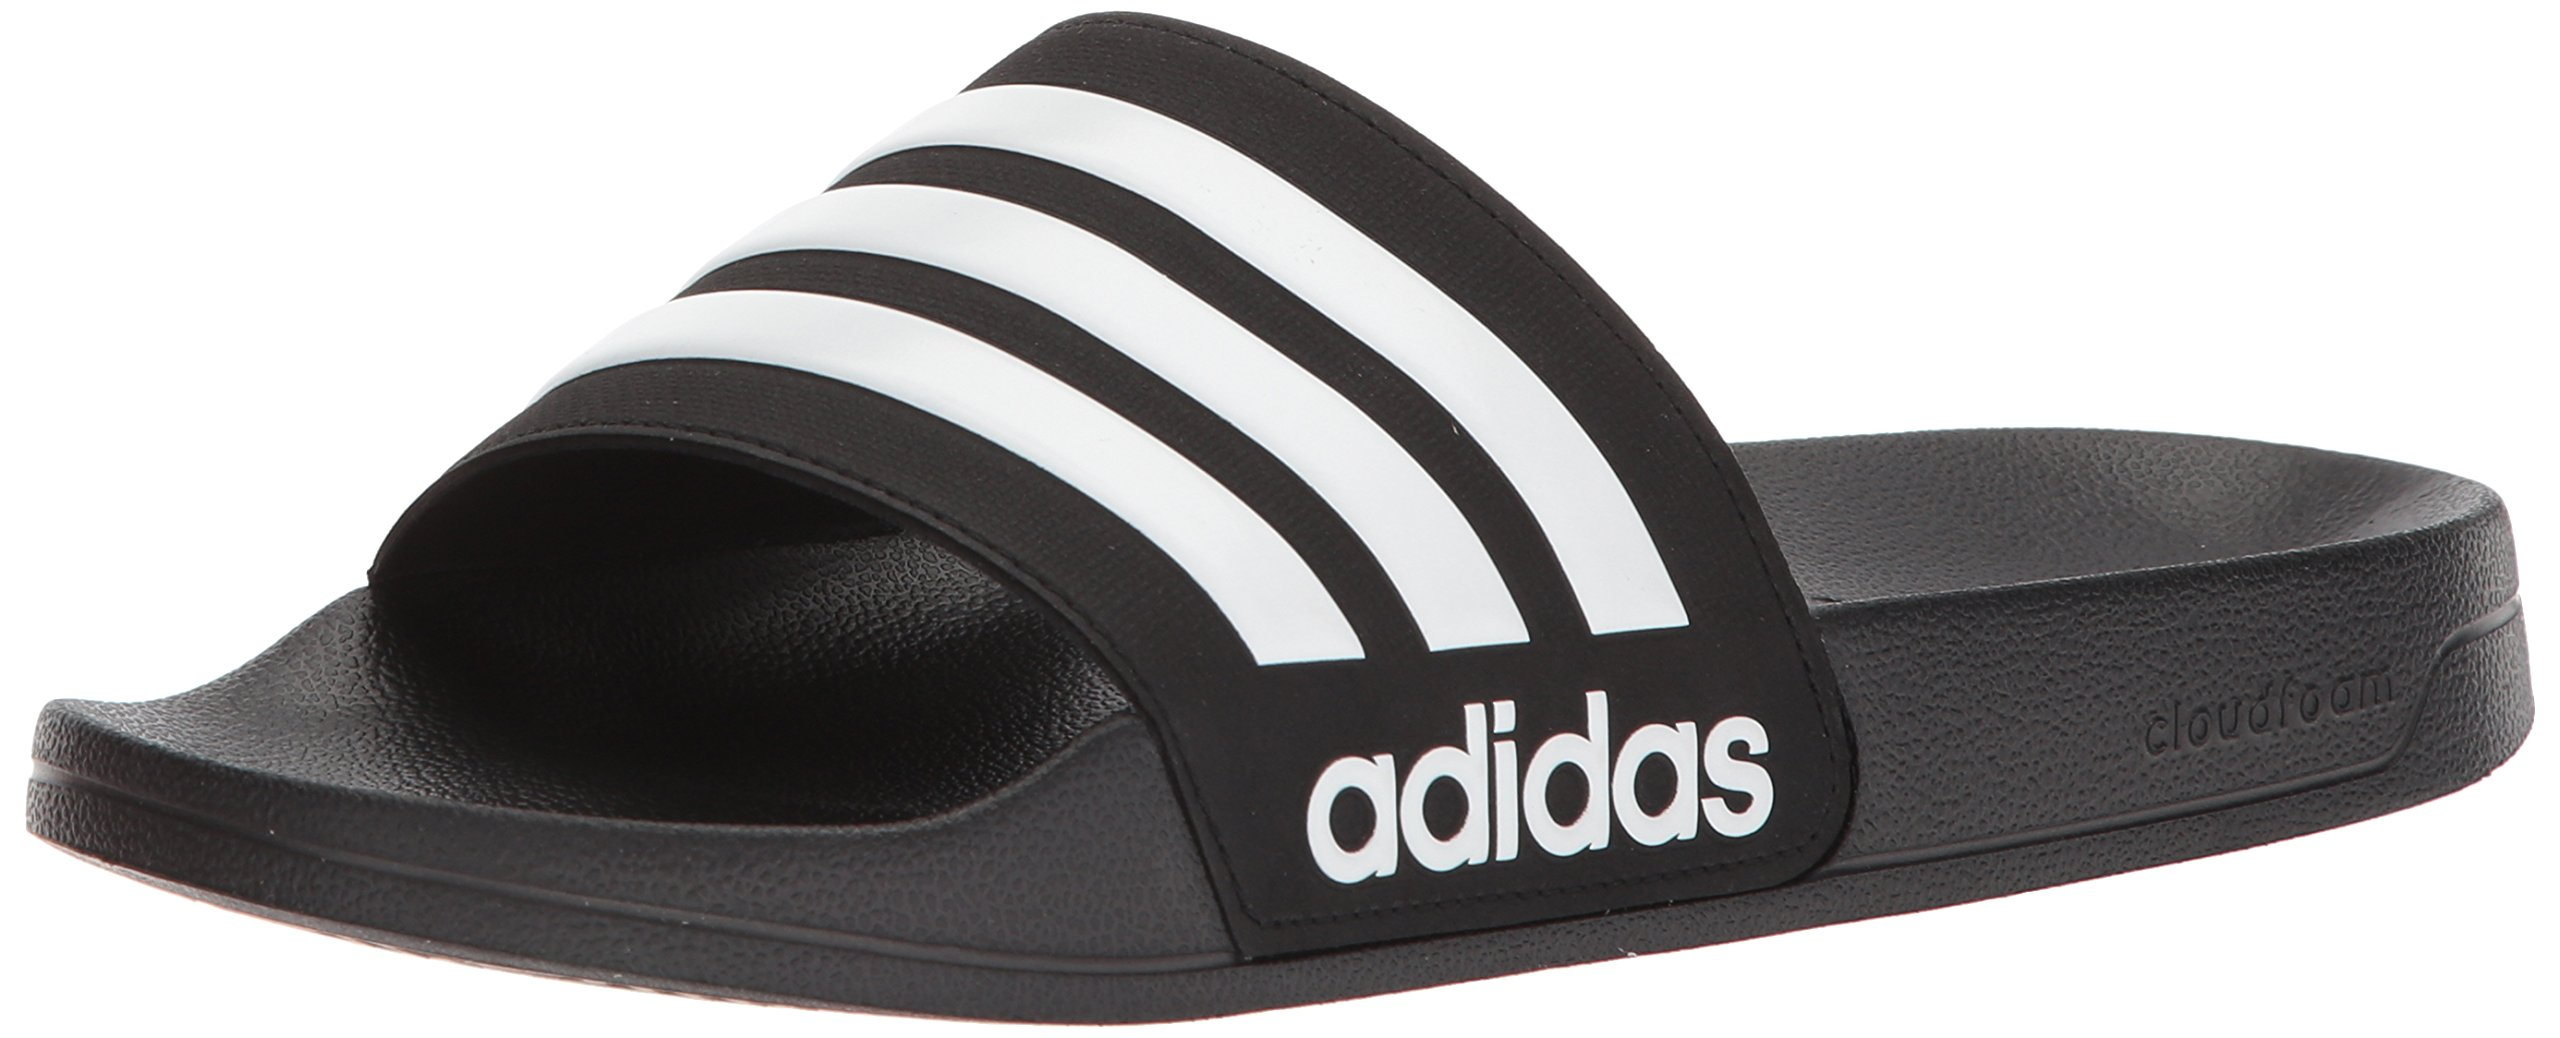 adidas Men's Adilette Shower Slide Sandal, Black/White/Black, 11 M US by adidas